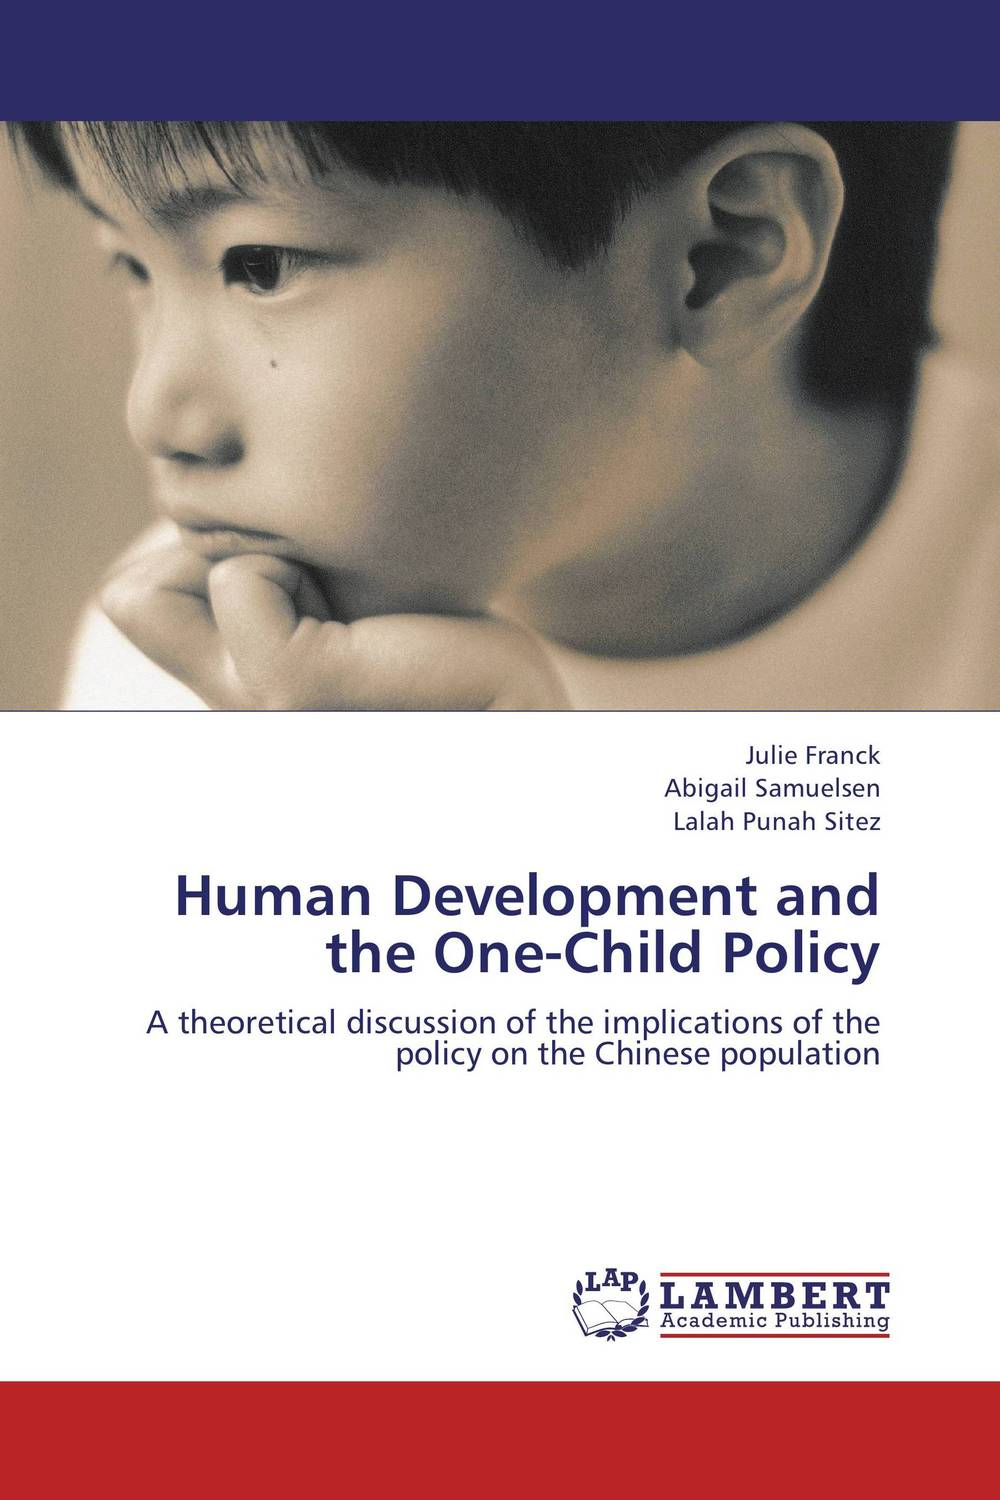 Human Development and the One-Child Policy rajesh mujariya design and development of niosomal delivery system for ketoprofen